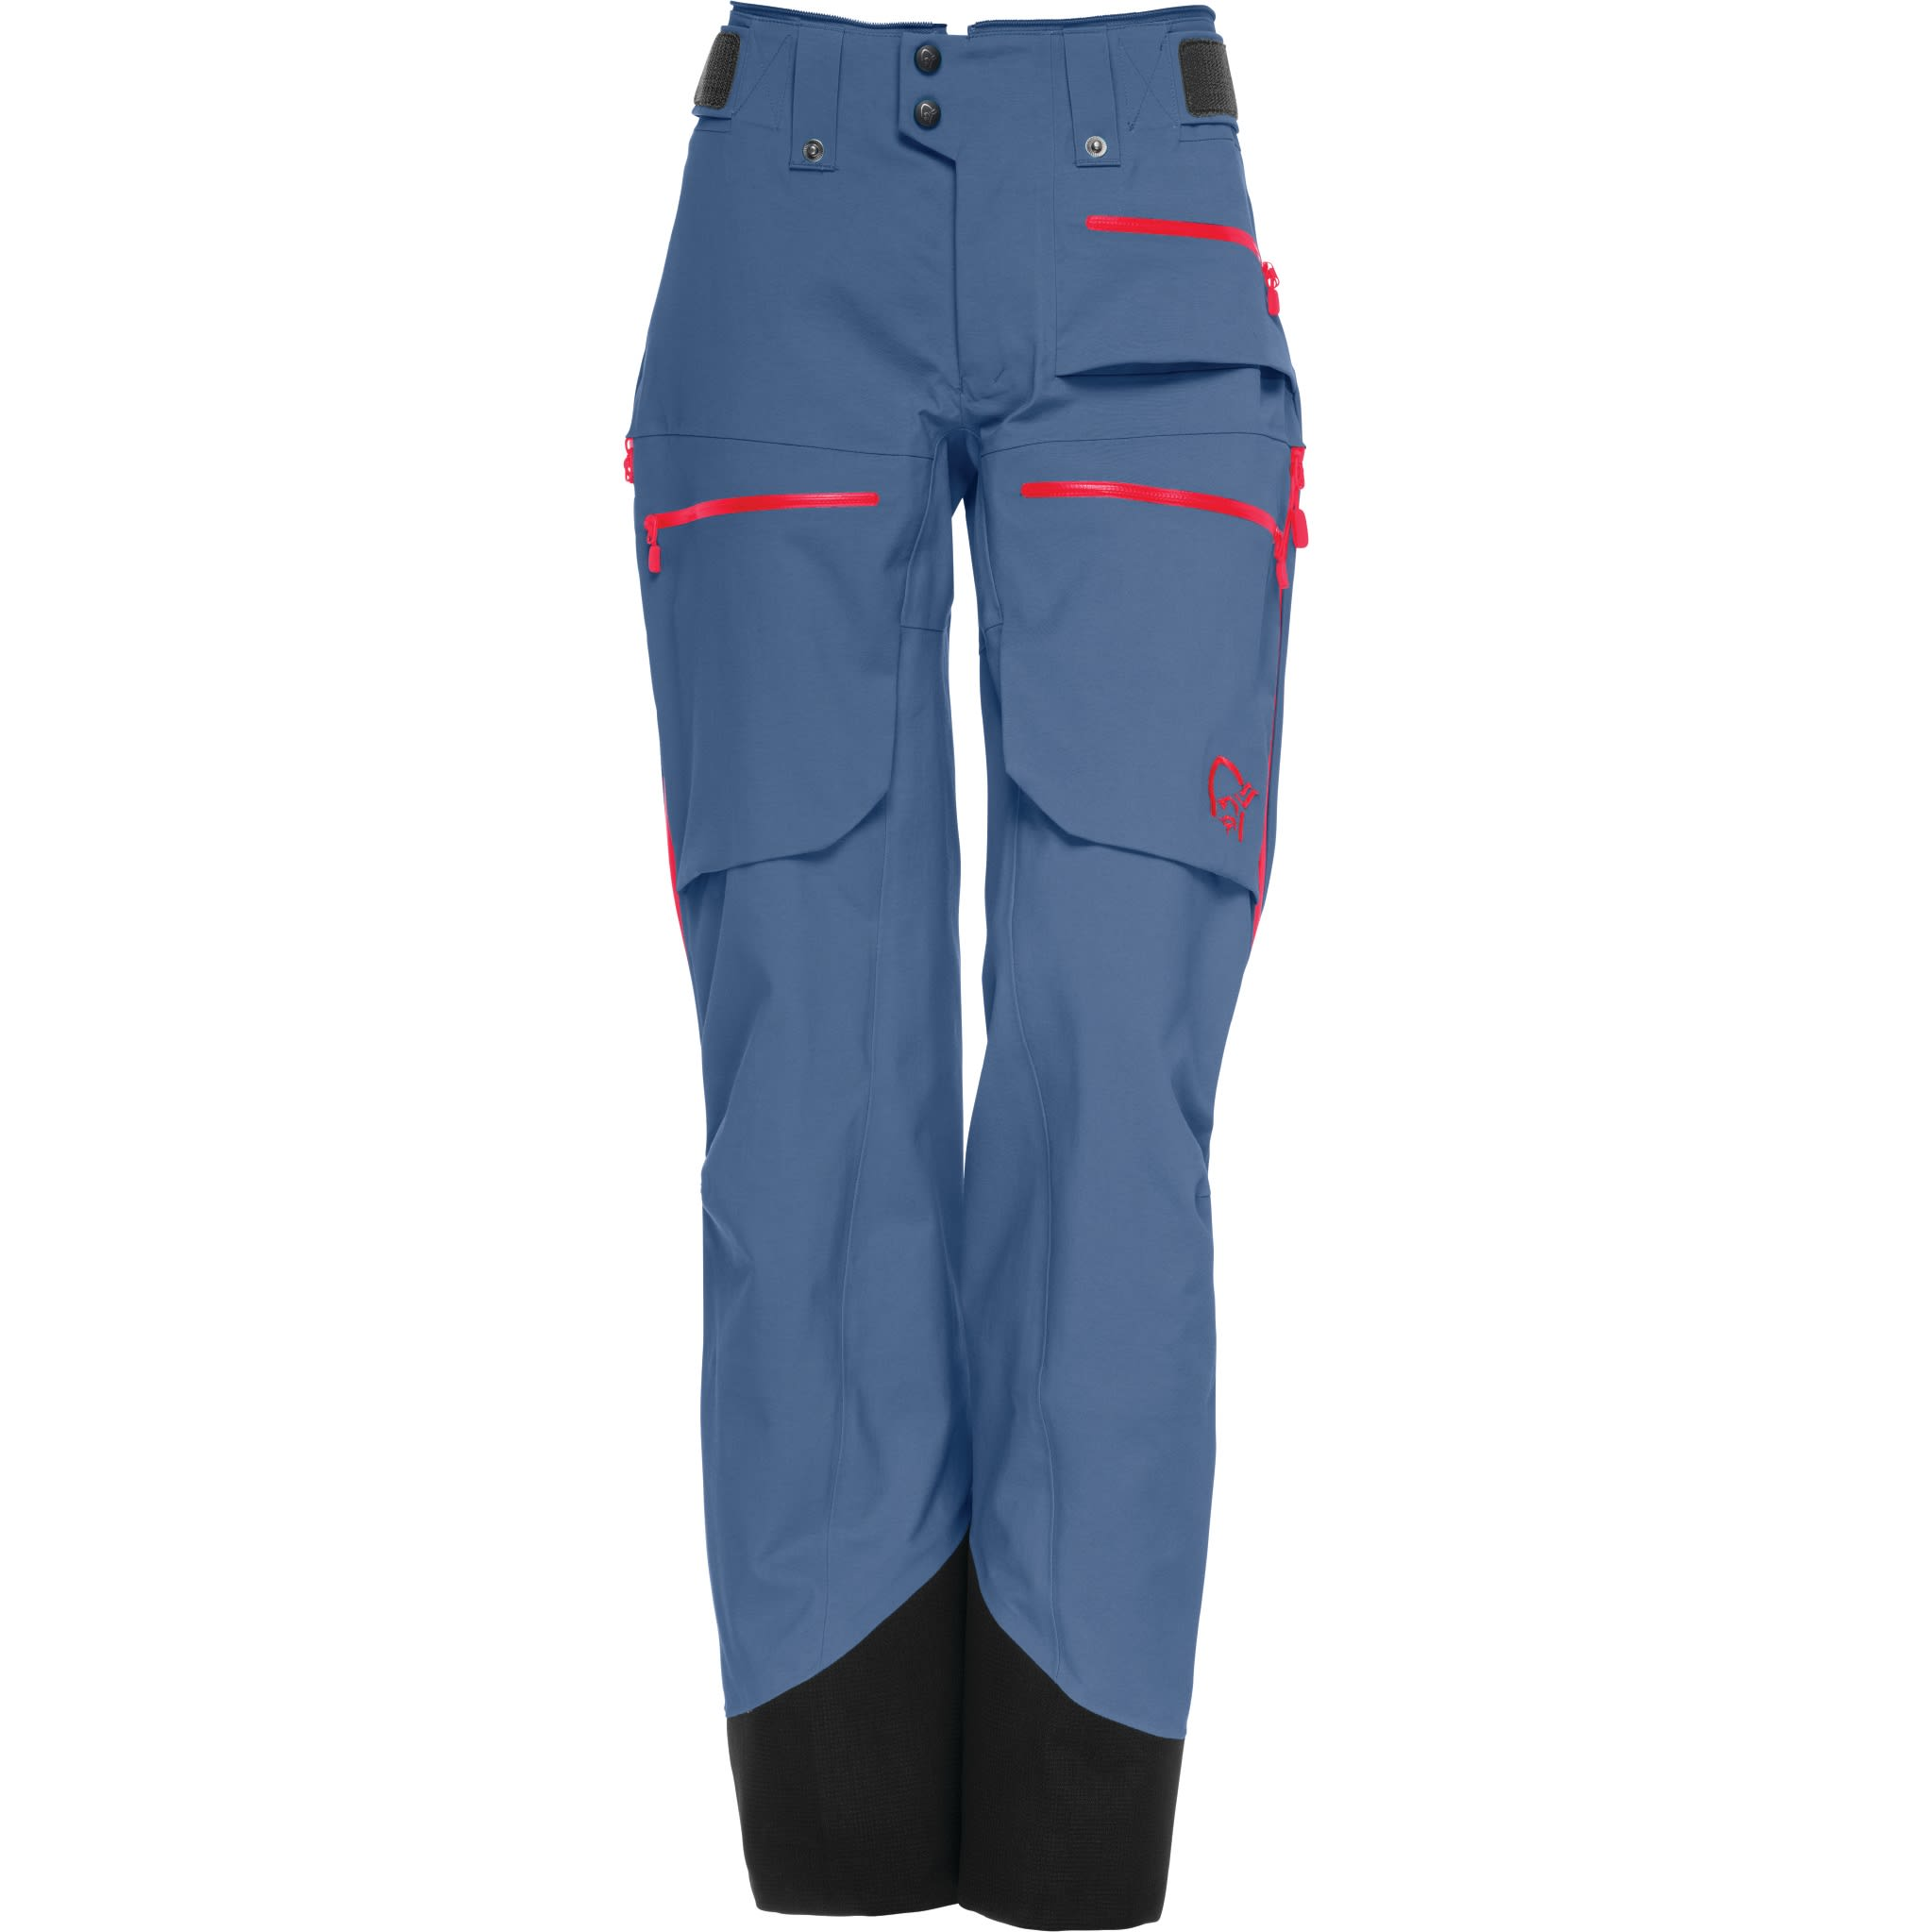 89bcc3b9 Buy Norrøna Lofoten Gore-Tex Pro Pants Women's (2018) from Outnorth